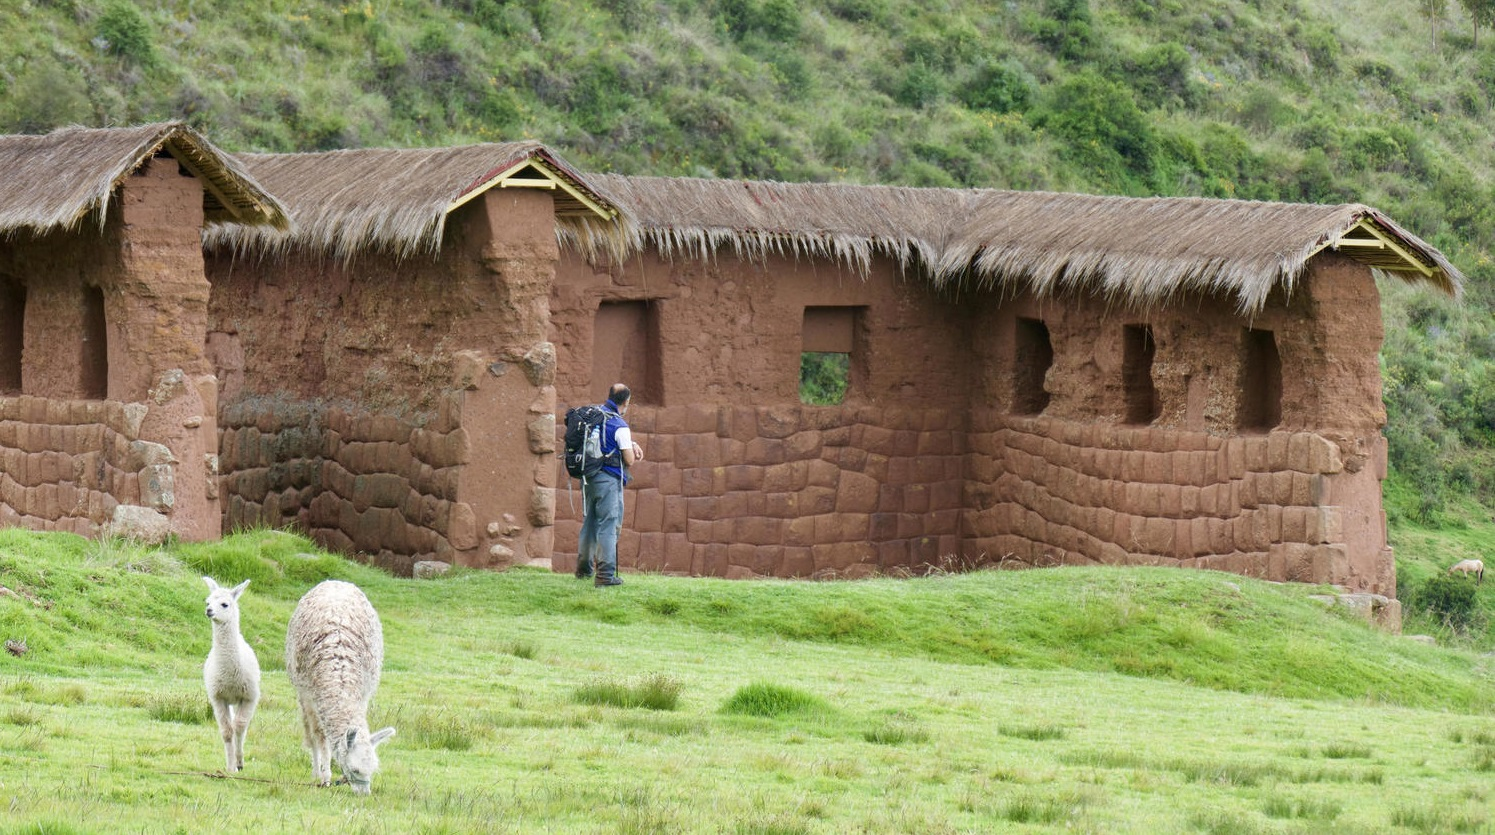 alternative-inca-trail-peru-sacred-valley-huchuyqosco-llama-pepe-house